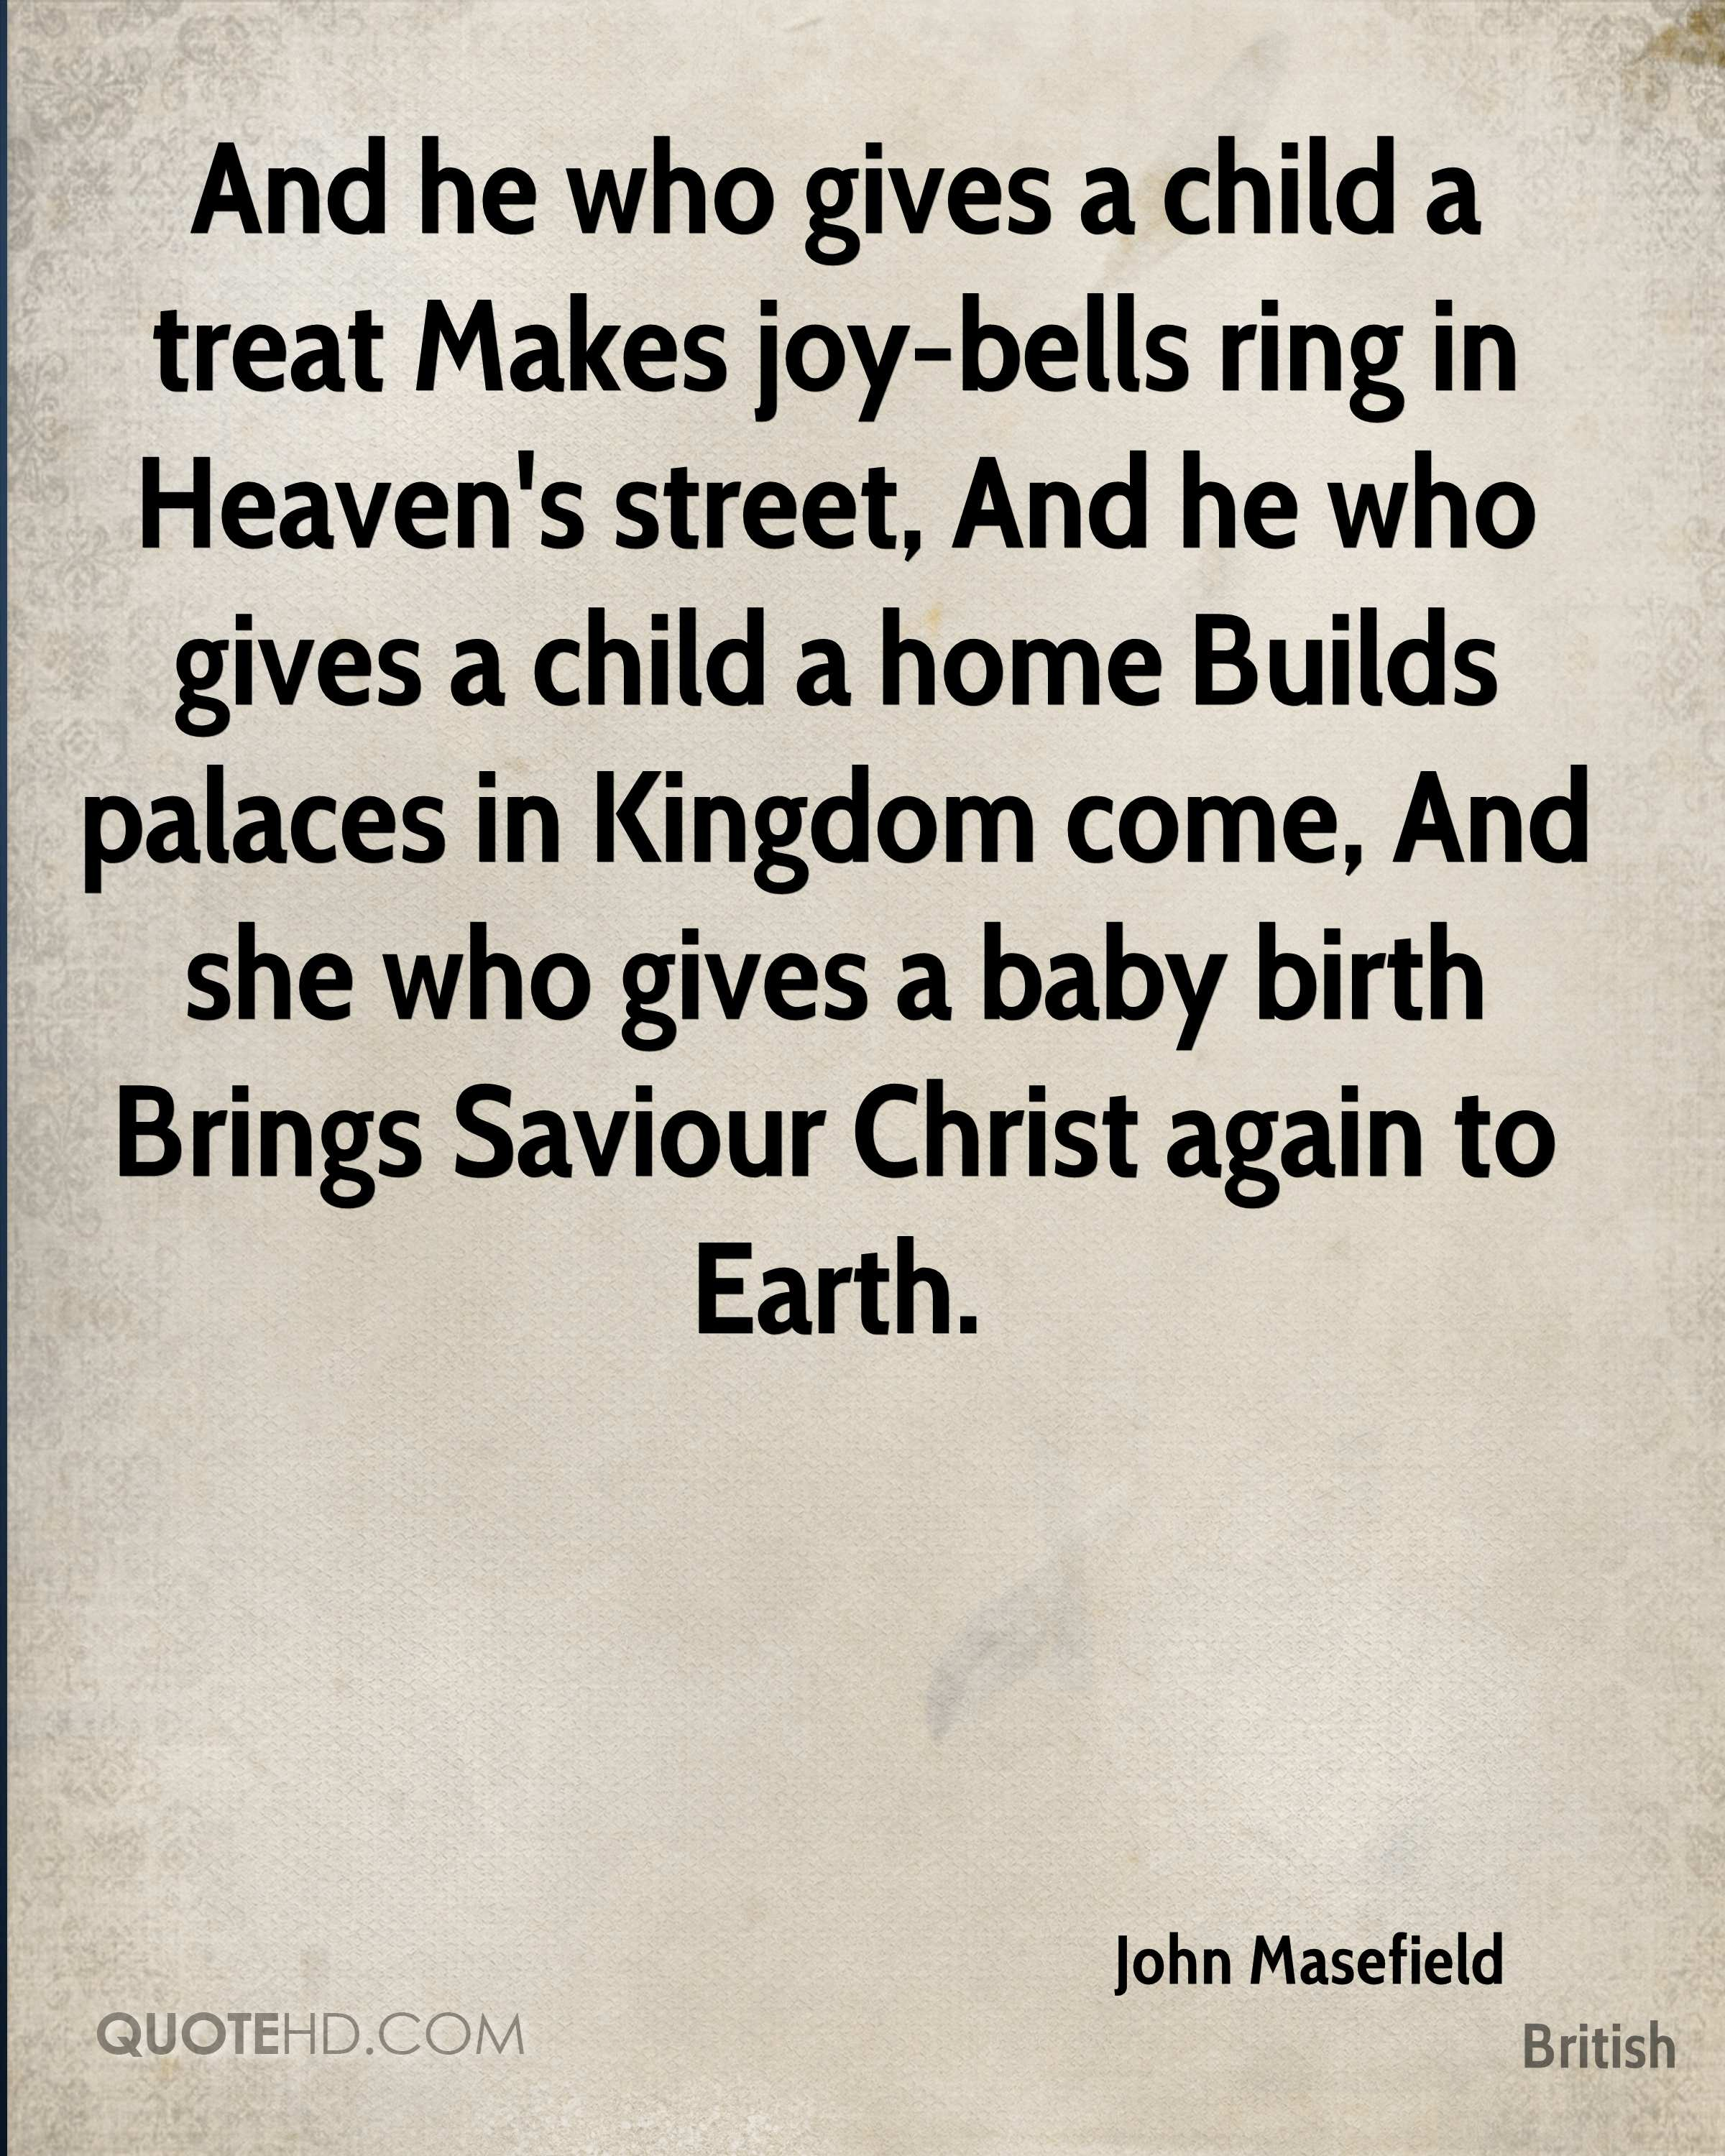 And he who gives a child a treat Makes joy-bells ring in Heaven's street, And he who gives a child a home Builds palaces in Kingdom come, And she who gives a baby birth Brings Saviour Christ again to Earth.